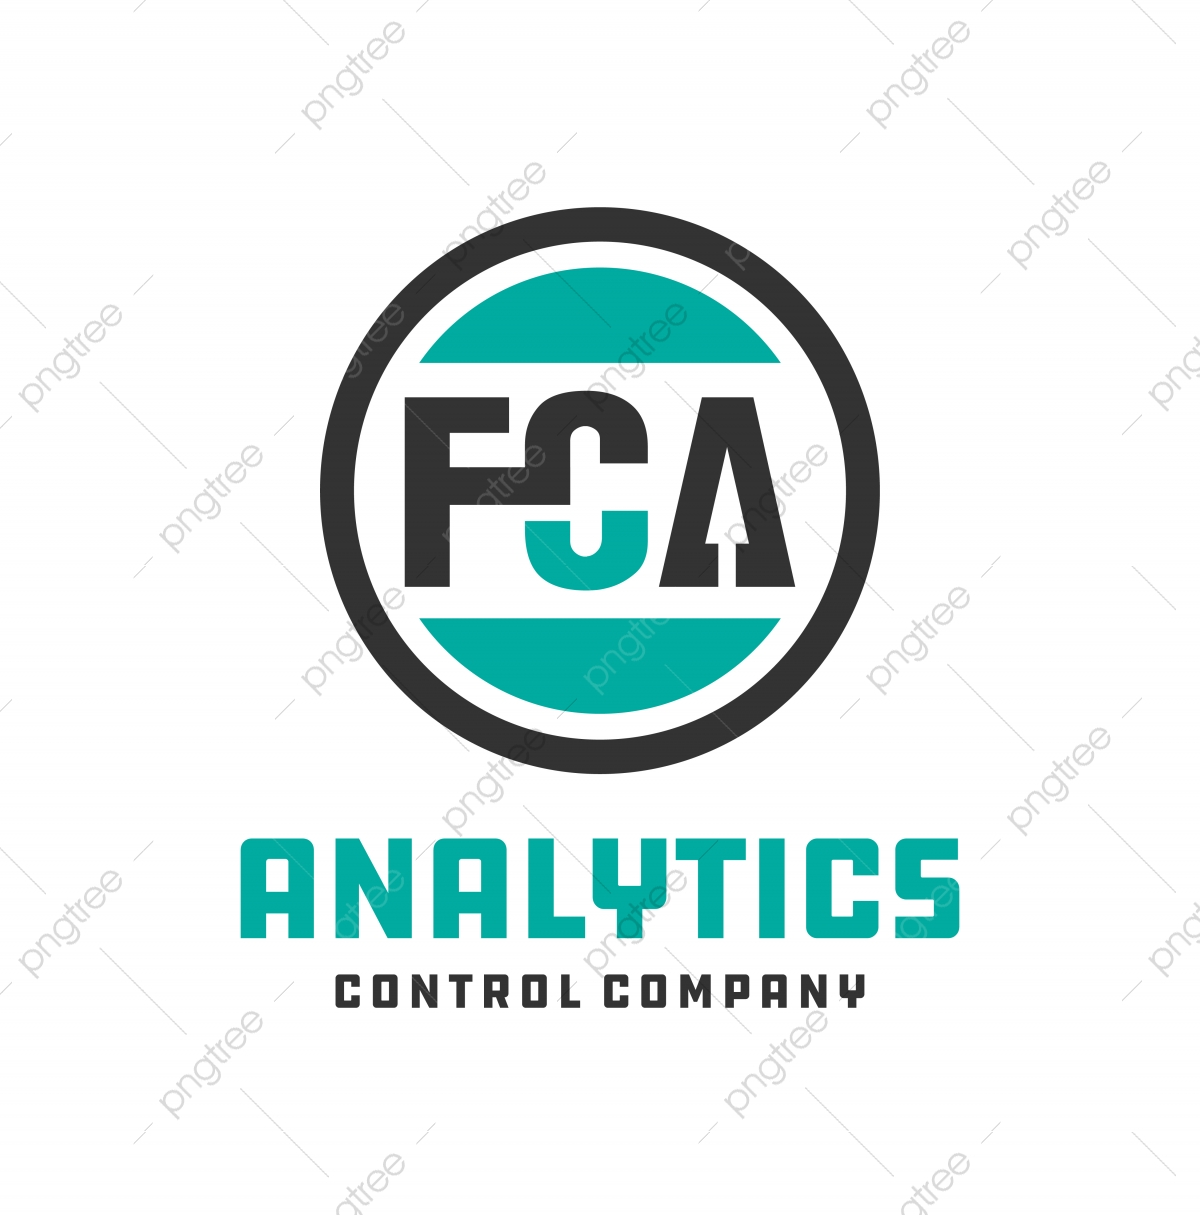 fc barcelona png images vector and psd files free download on pngtree https pngtree com freepng business industry logo letter fca 5356438 html